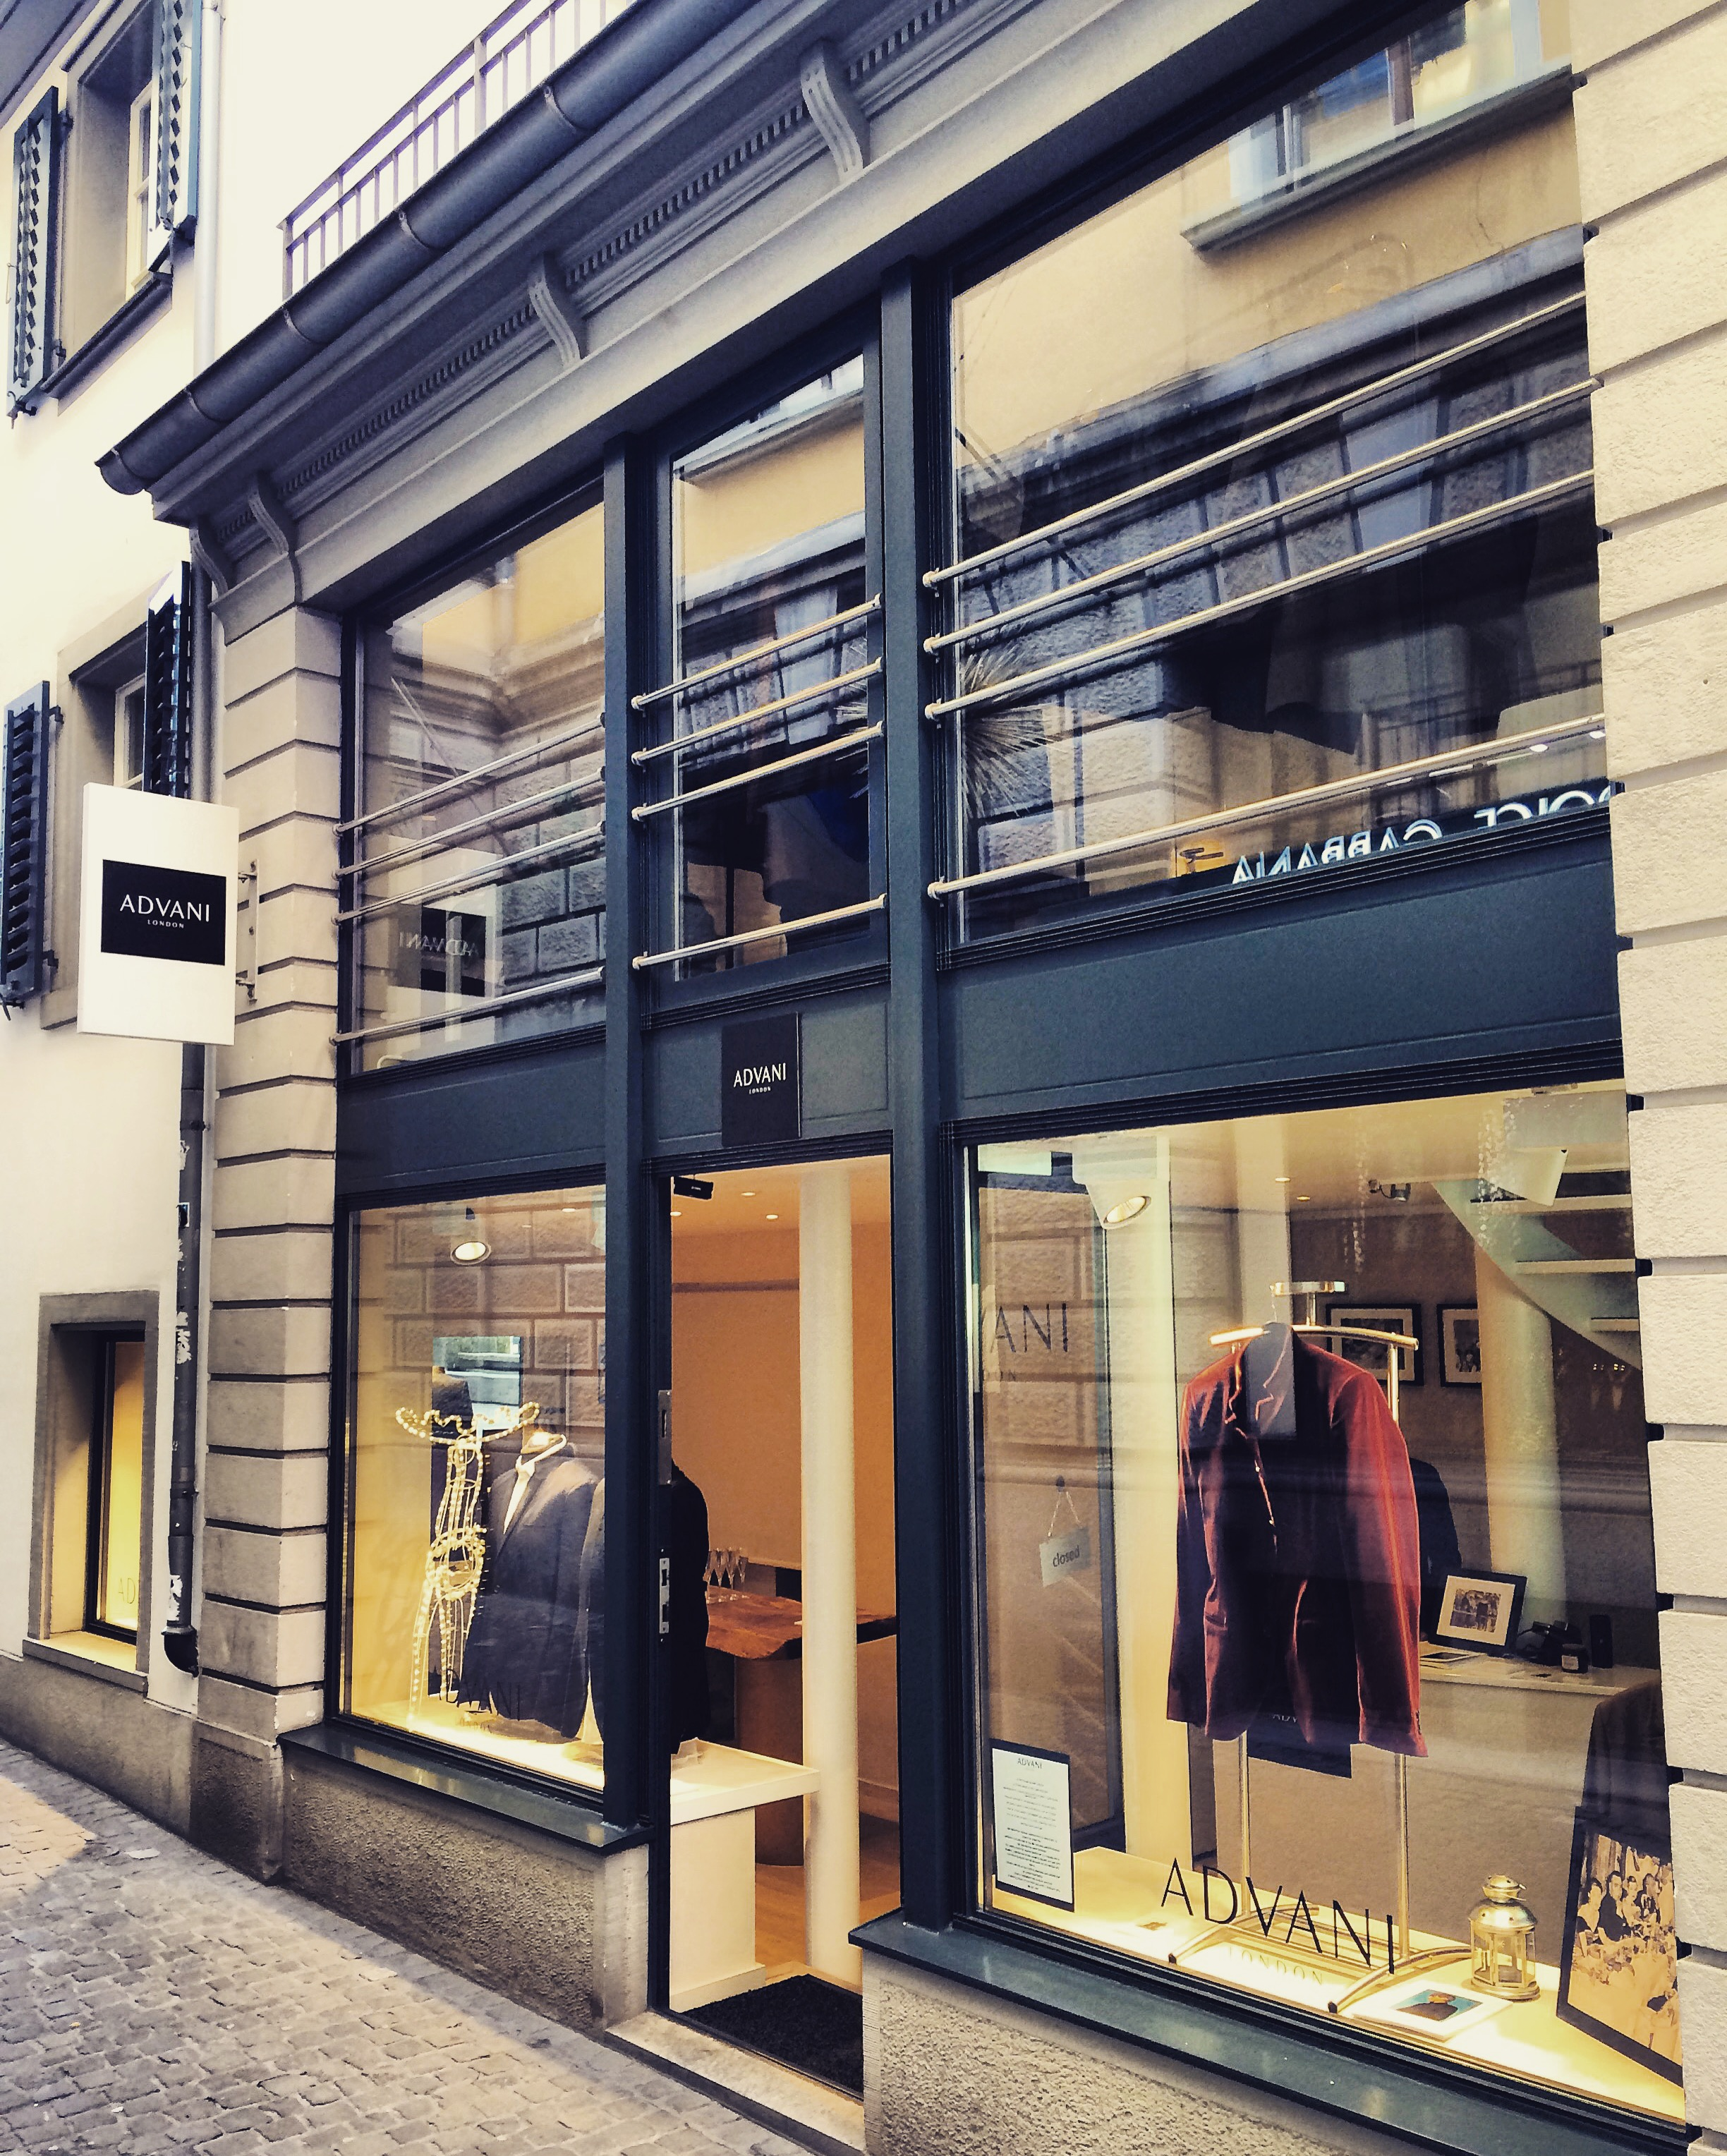 ZURICH POP UP SCHIPFE 1 DECEMBER 2015